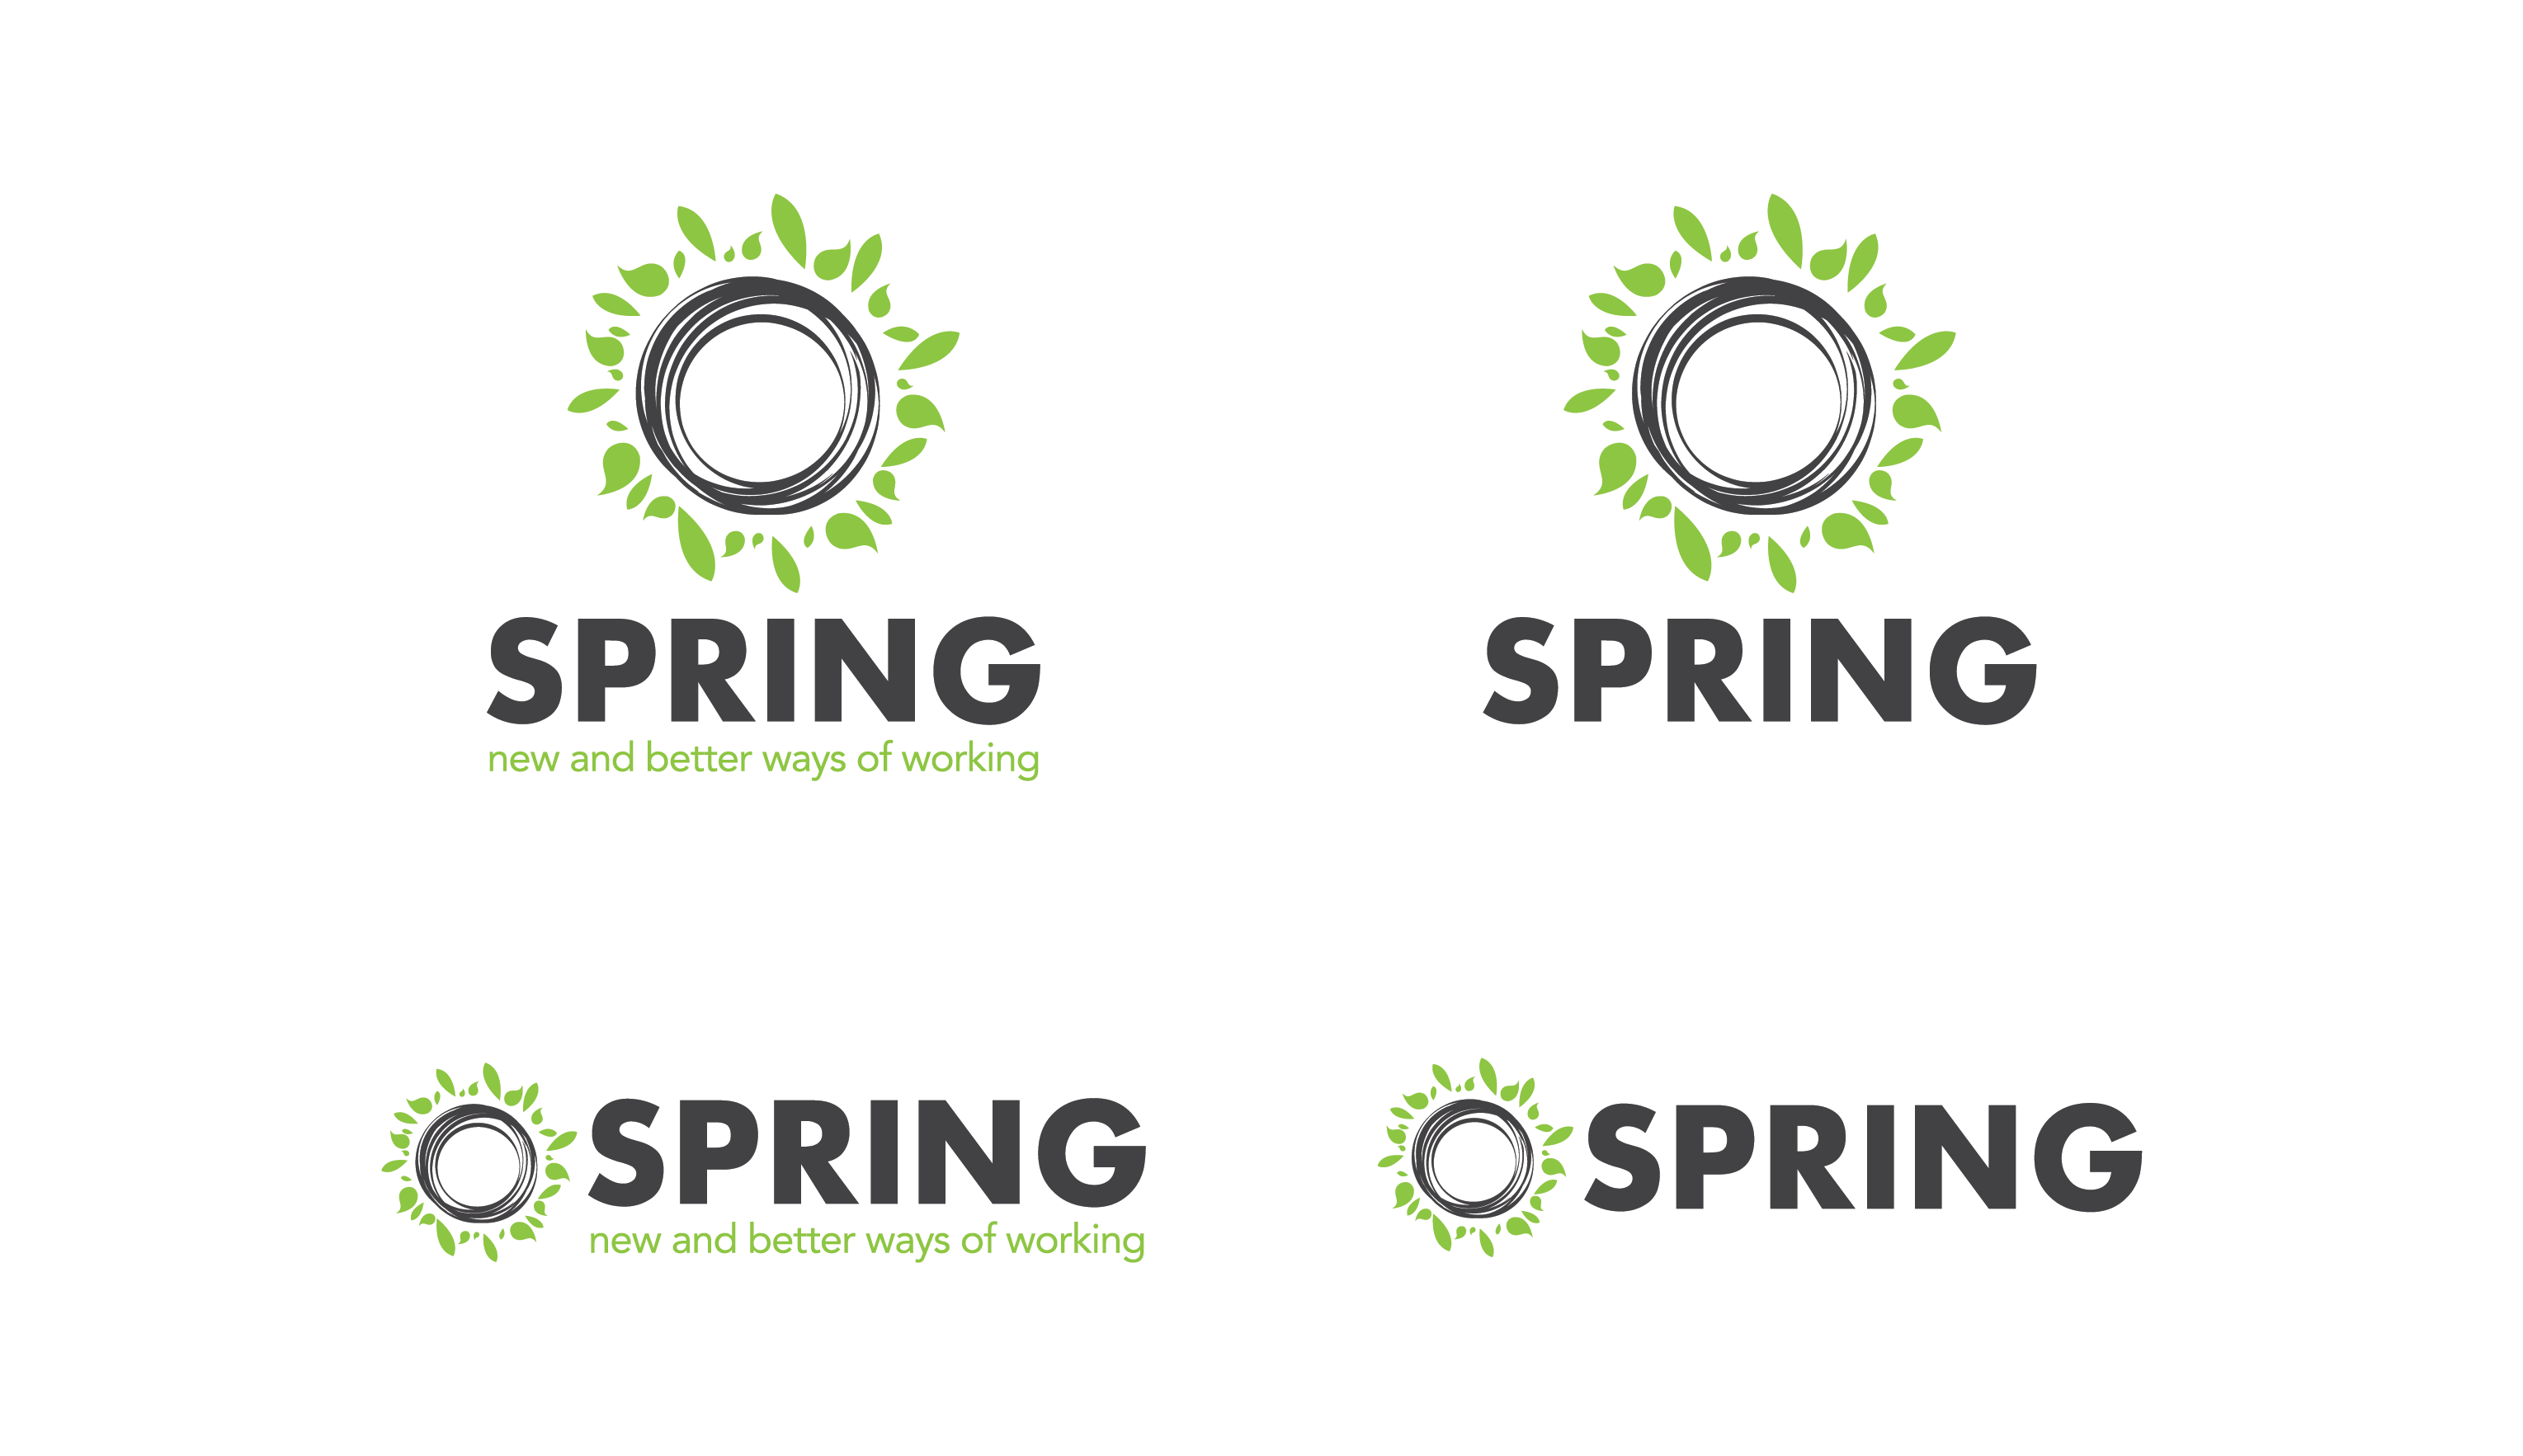 Brand and logo for spring.